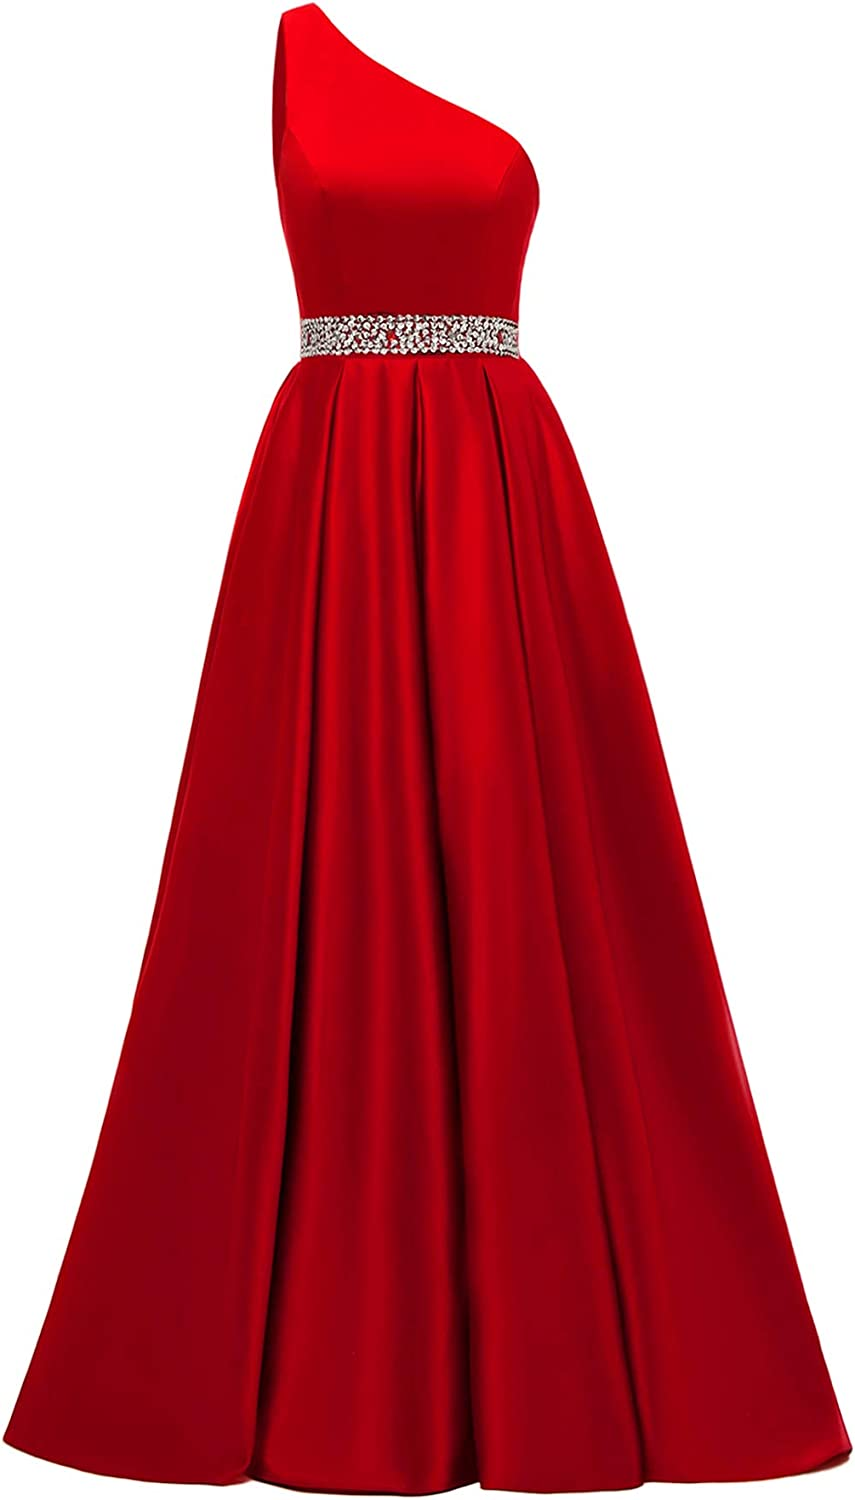 Yexinbridal One Shoulder Beaded Prom Dresses Long Satin Formal Evening Ball Gowns